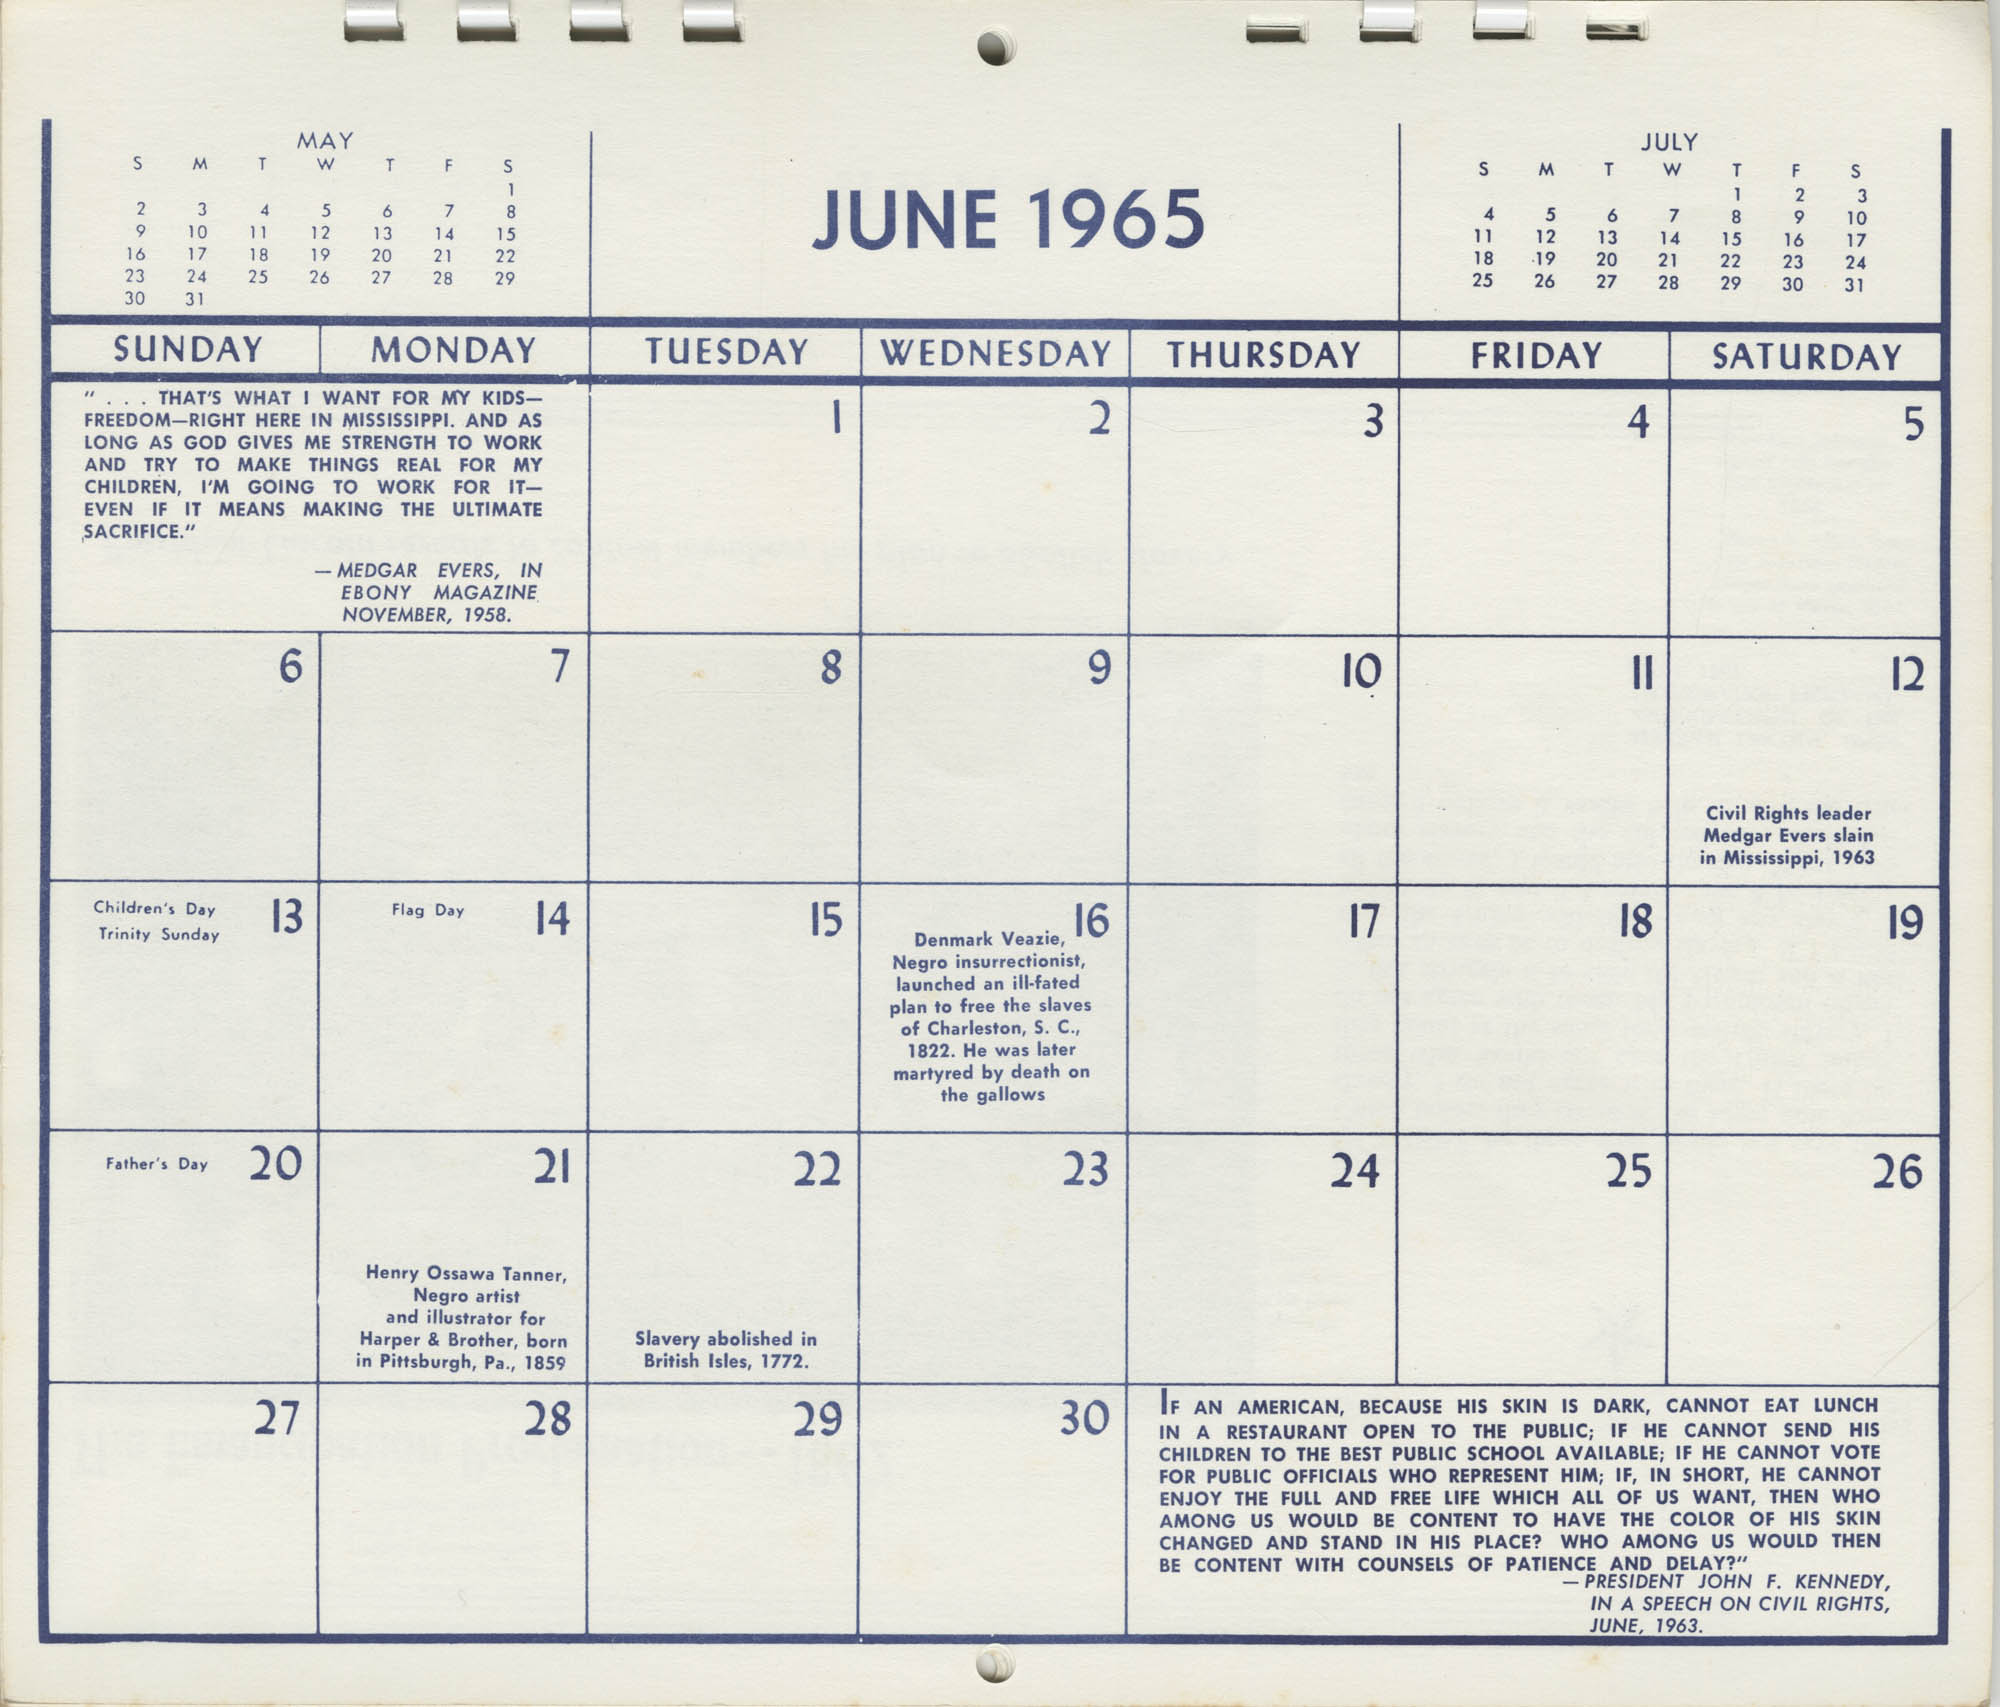 Southern Christian Leadership Conference Newsletter Calendar, June 1965, Bottom